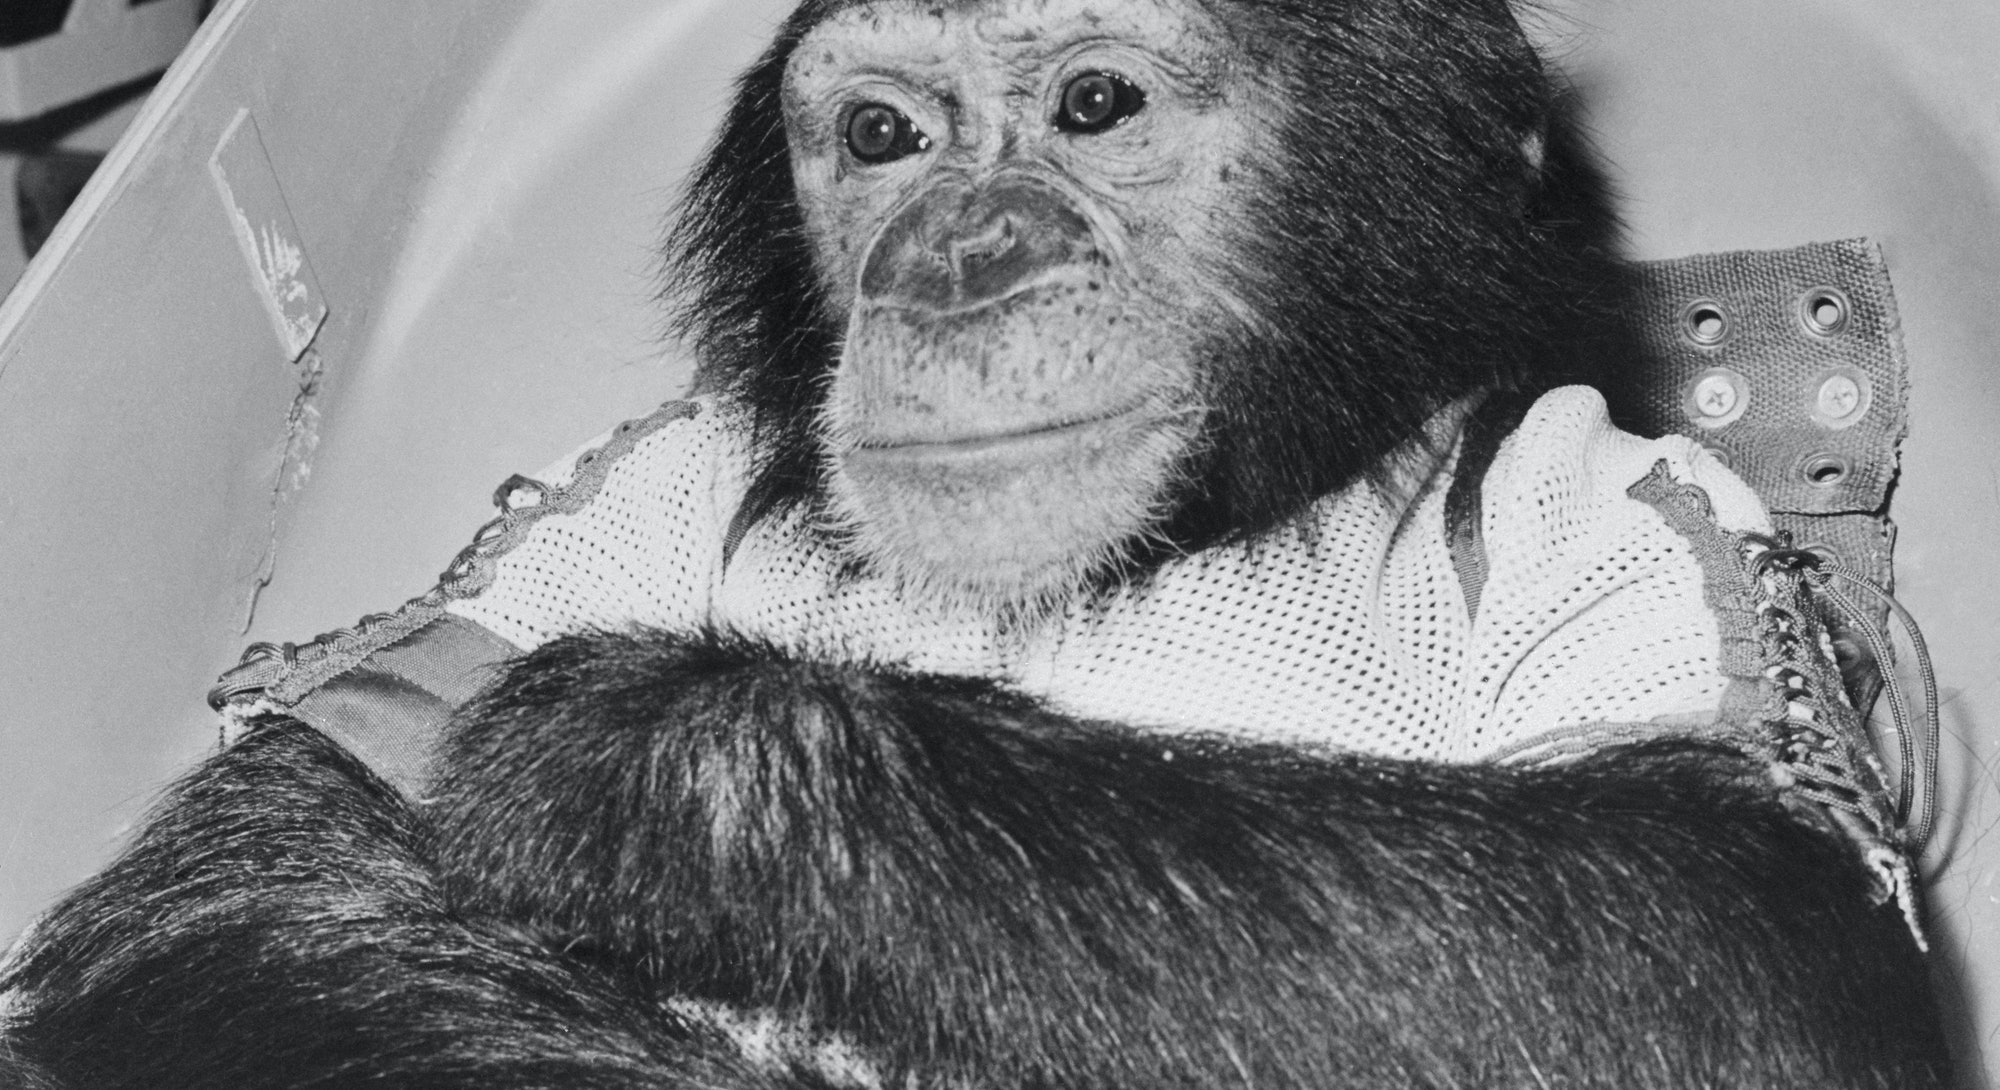 Ham the space chimp seems to be saying as he folds his arm and waits to be lifted out of the space capsule which carried him on his historic flight.